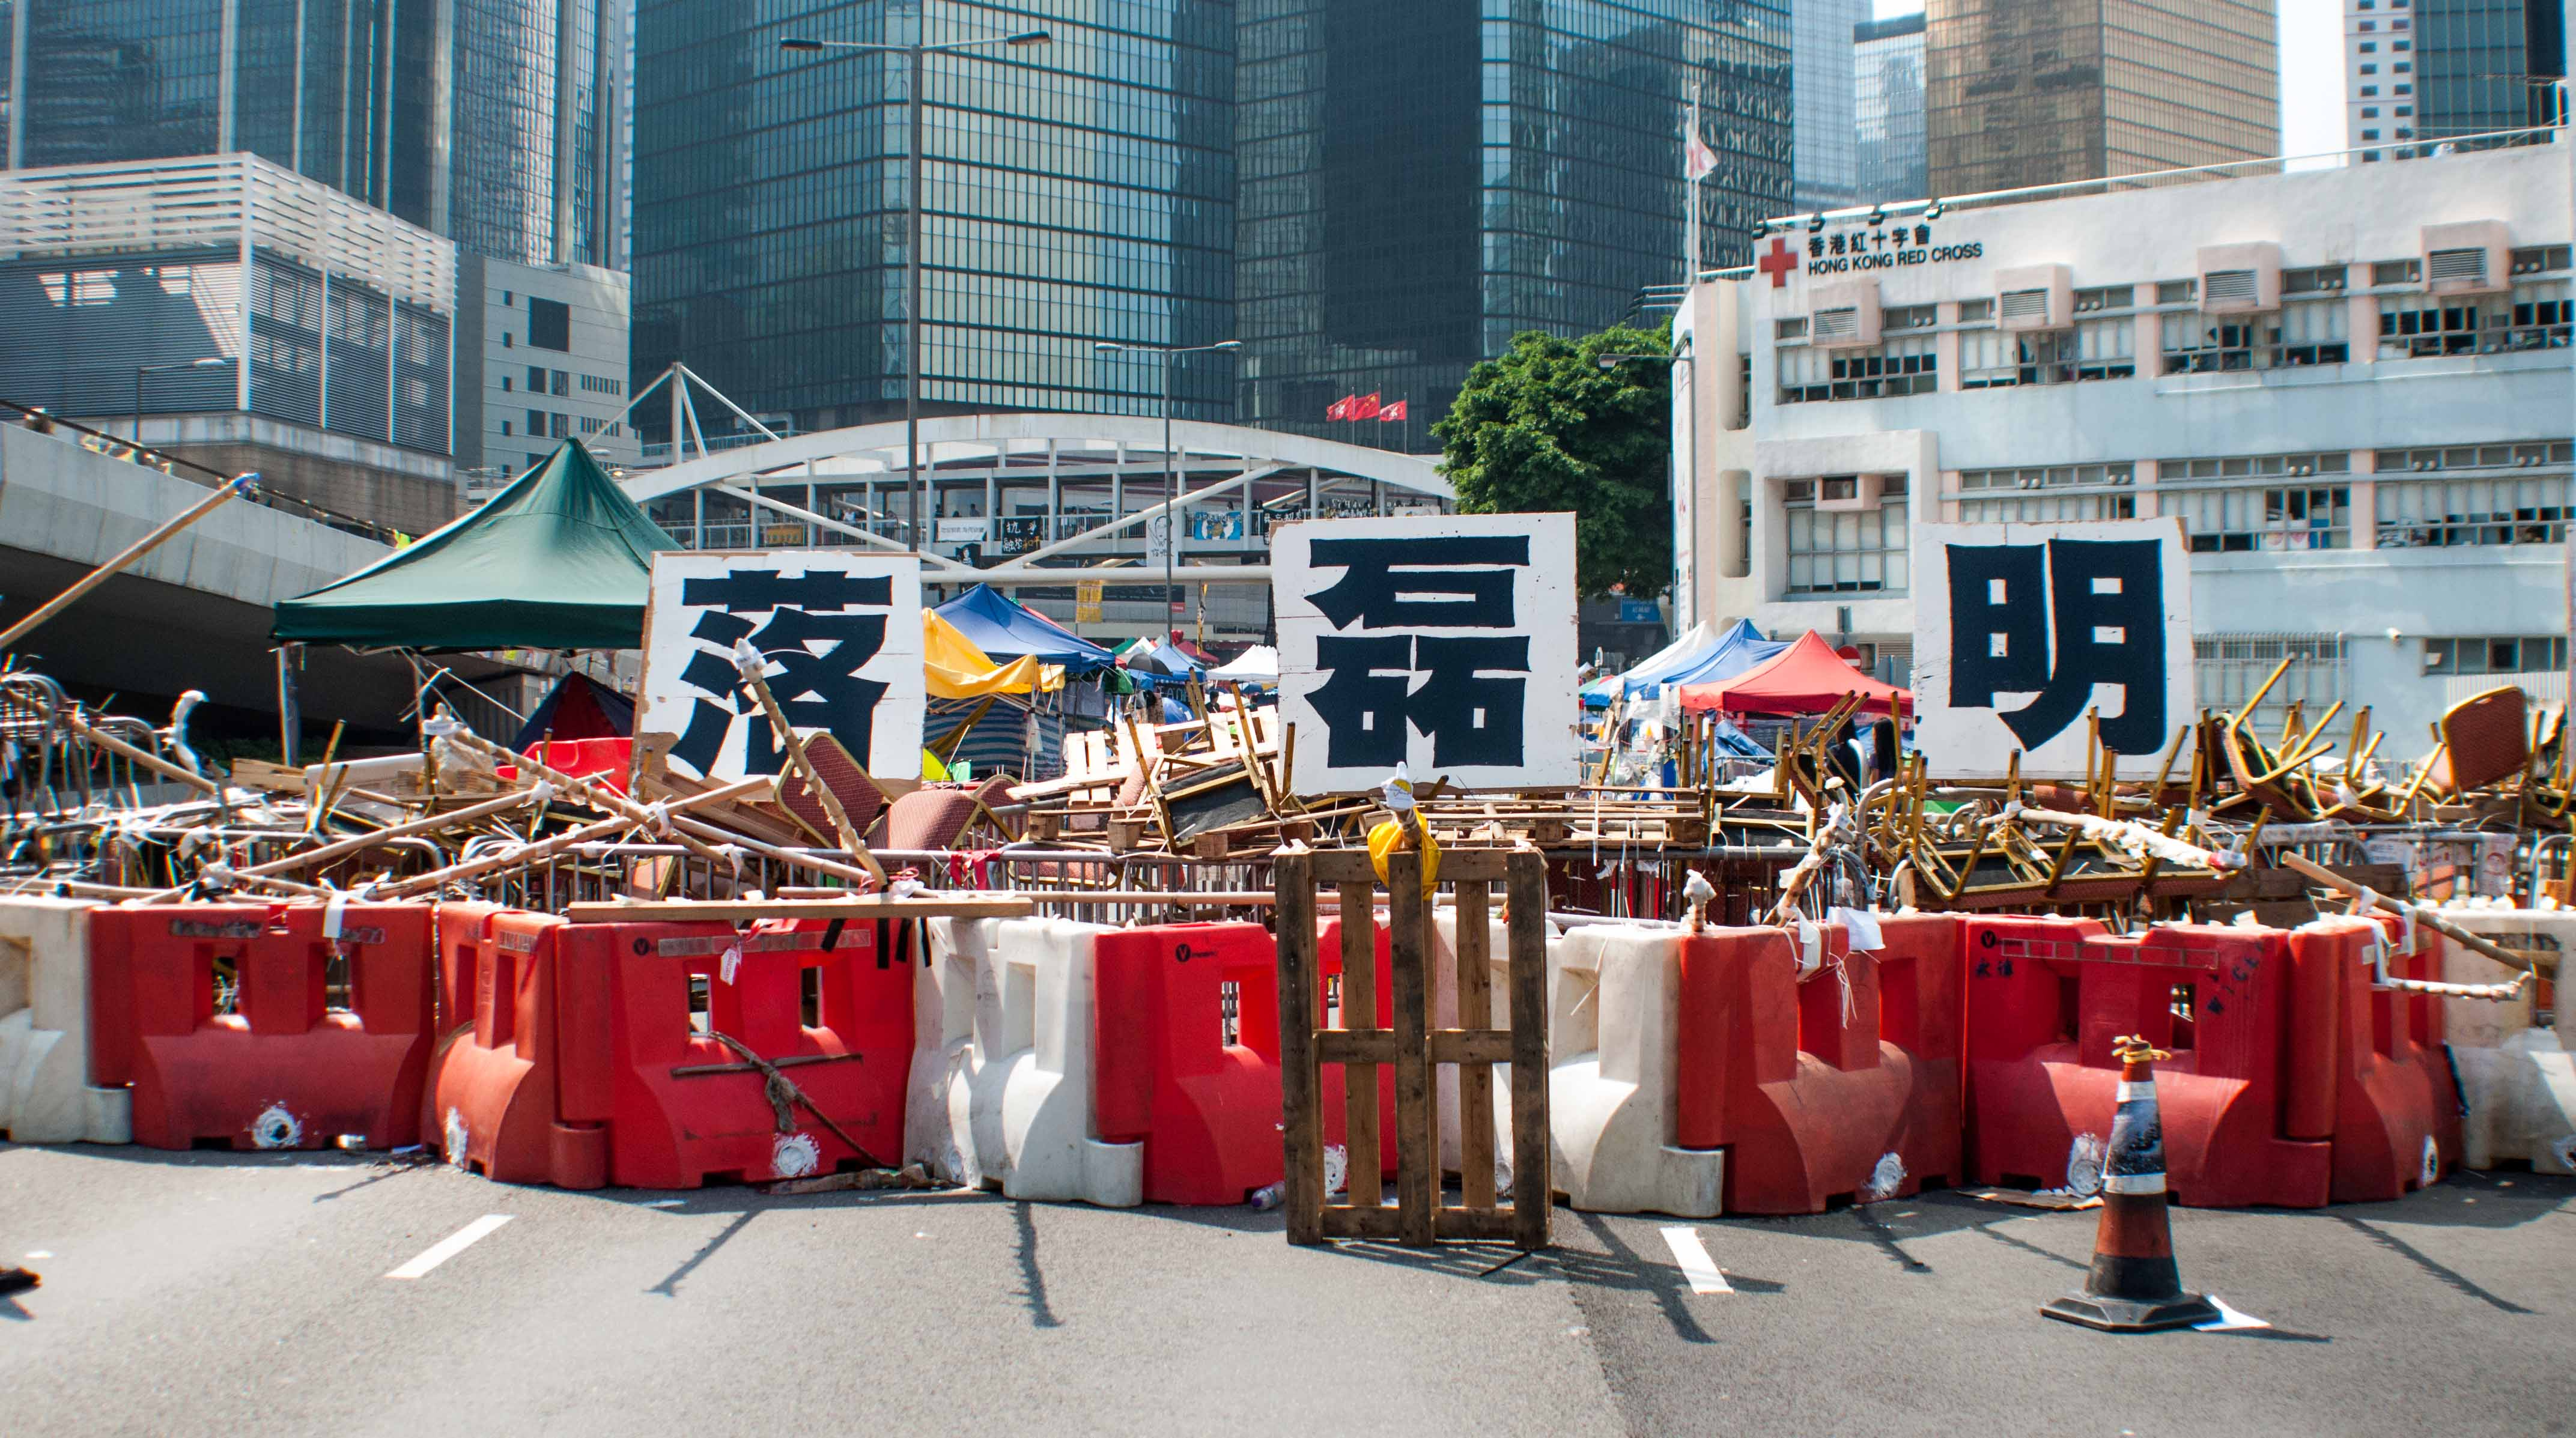 Social Media In The Hk Umbrella Revolution A Double Edged Sword Red Blockade Of Hong Kong Occupy Central